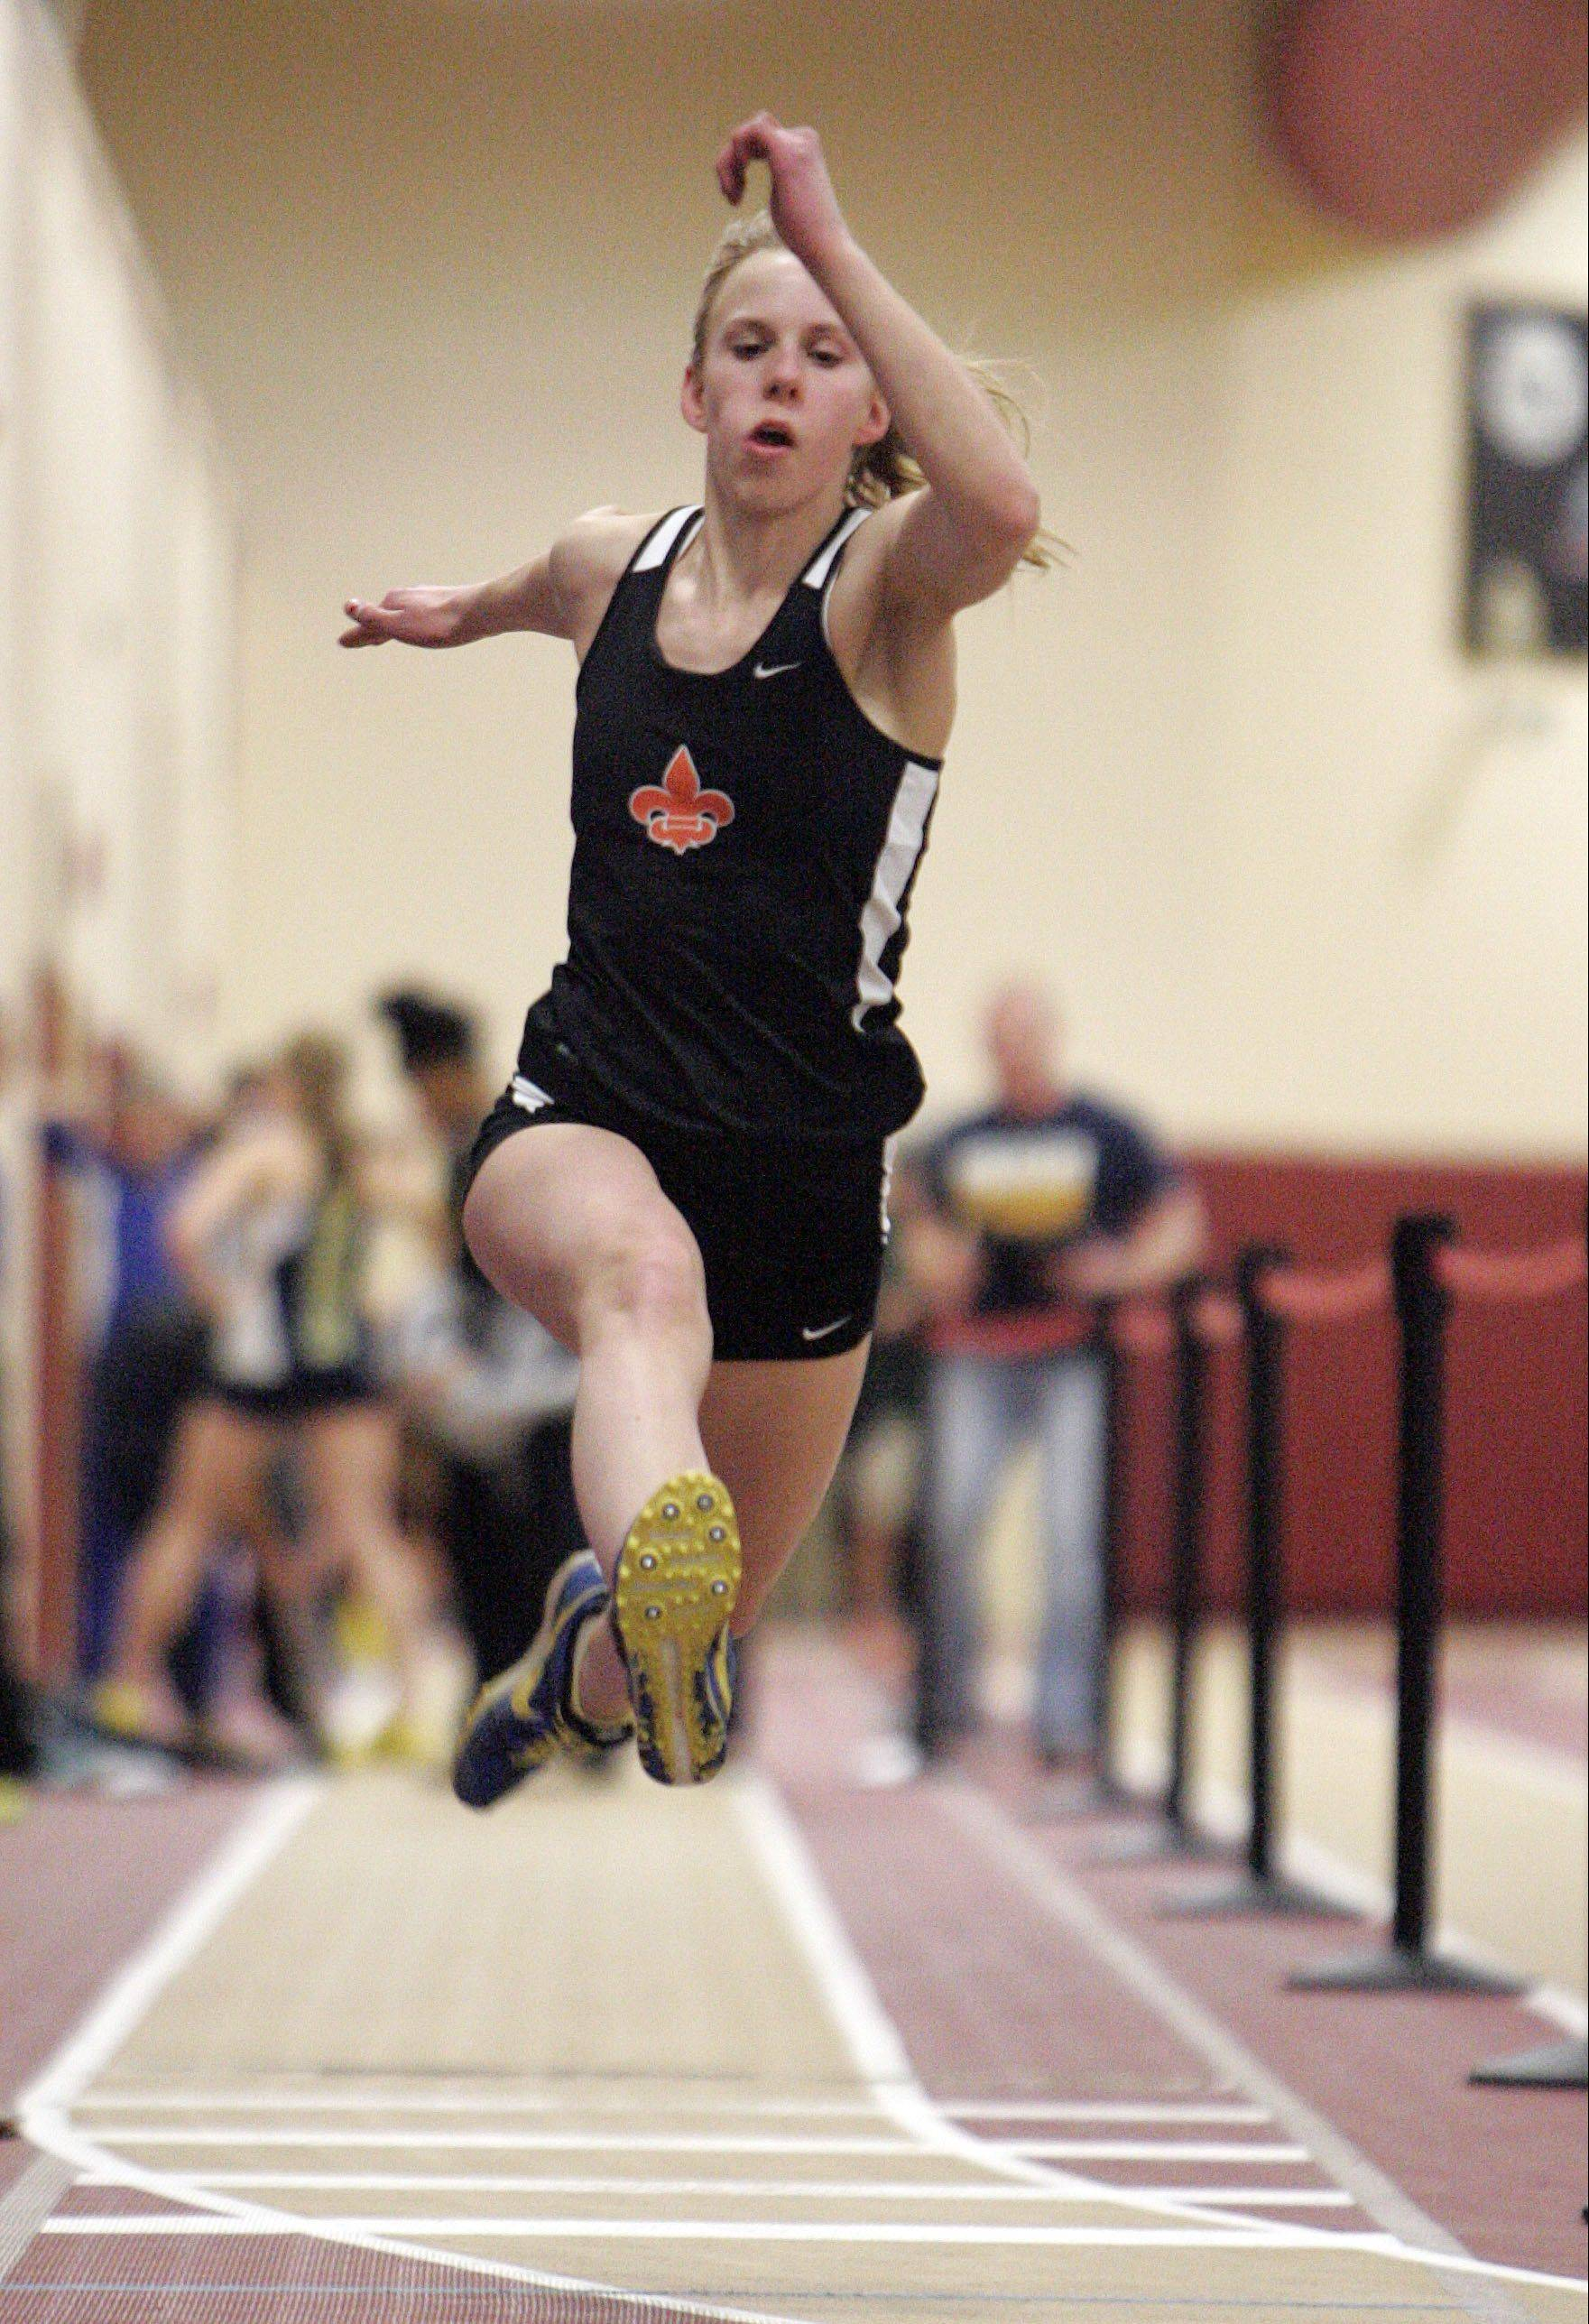 Above: Allison Chmelik competes in the triple jump for runner-up St. Charles East Friday at the UEC indoor meet at Batavia. Below from left to right: St. Charles North's Jessica Grill, Geneva's McKenna Happold and Batavia's Leah Narup.